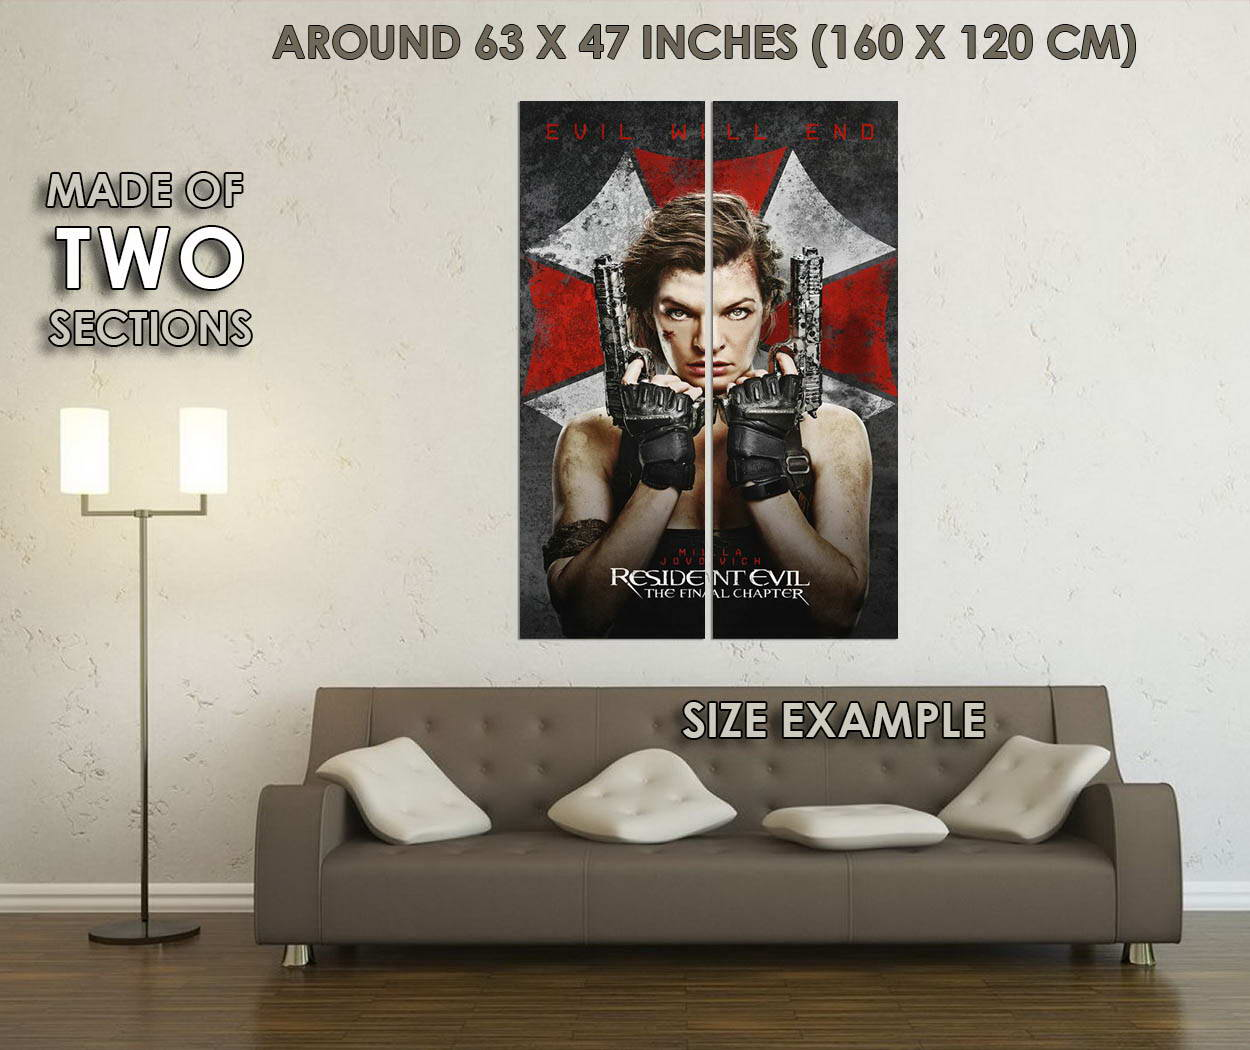 10783-Resident-Evil-The-Final-Chapter-New-Movie-LAMINATED-POSTER-CA thumbnail 6